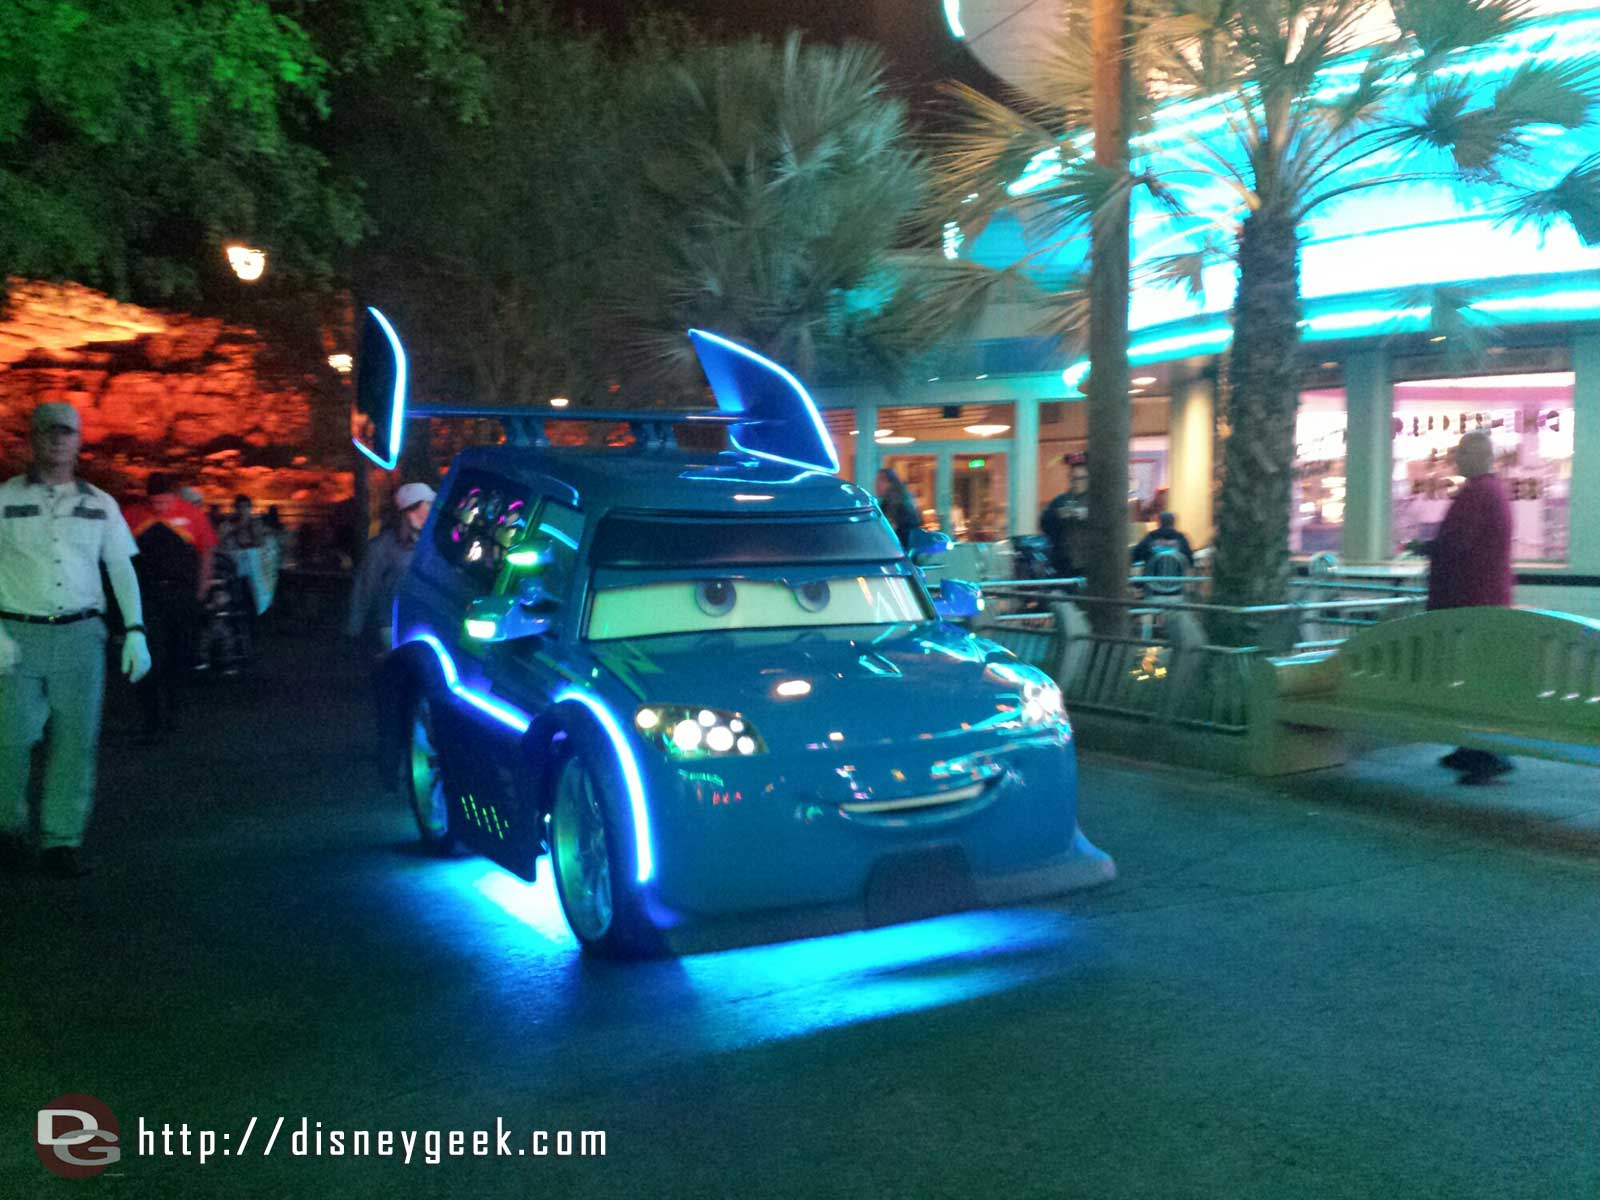 DJ rolling out to his dance party #CarsLand